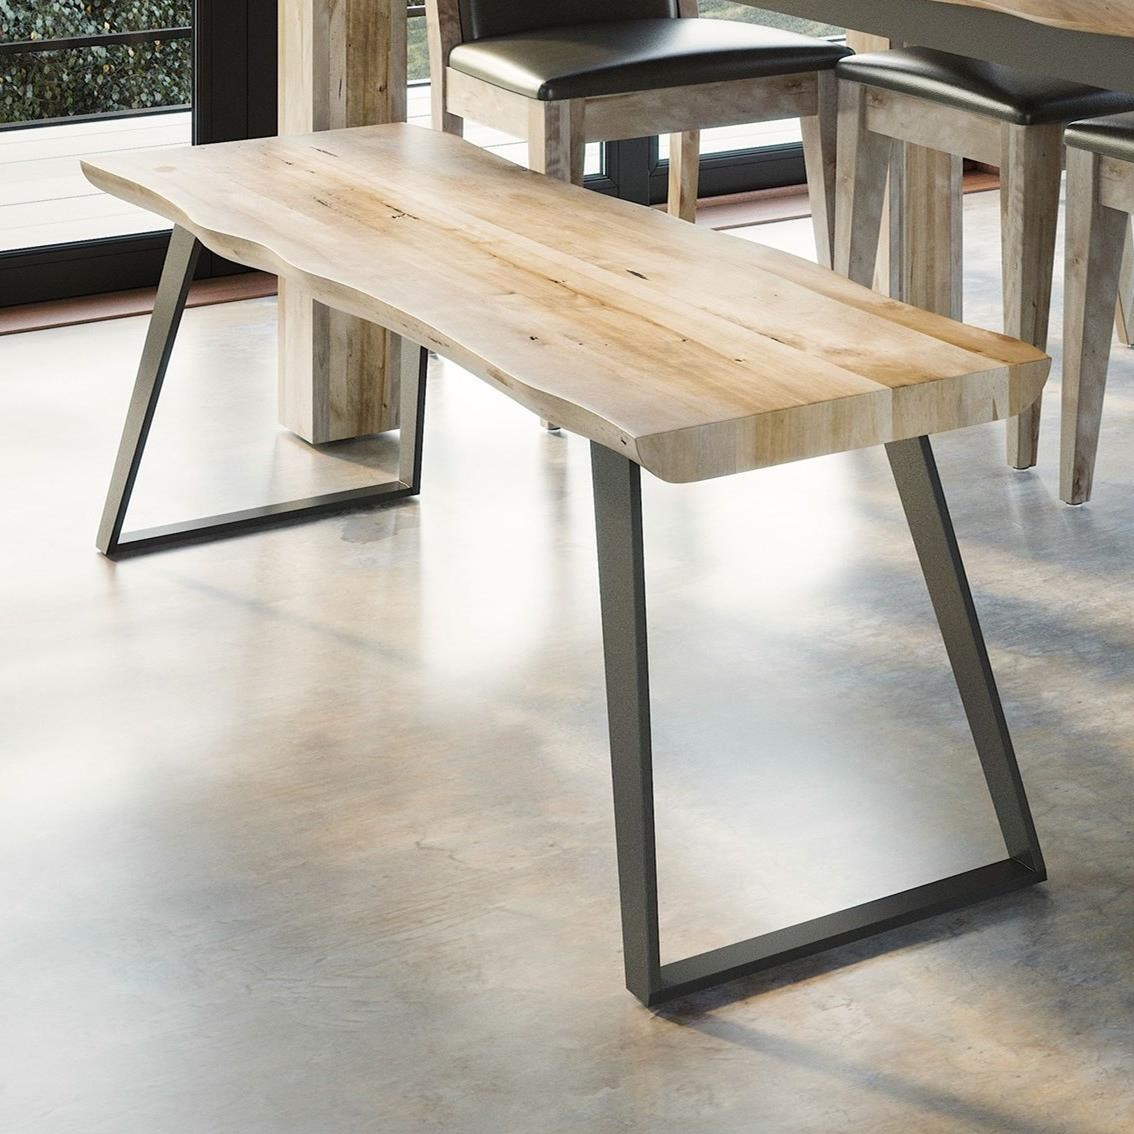 East Side Customizable Live Edge Bench by Canadel at Dinette Depot